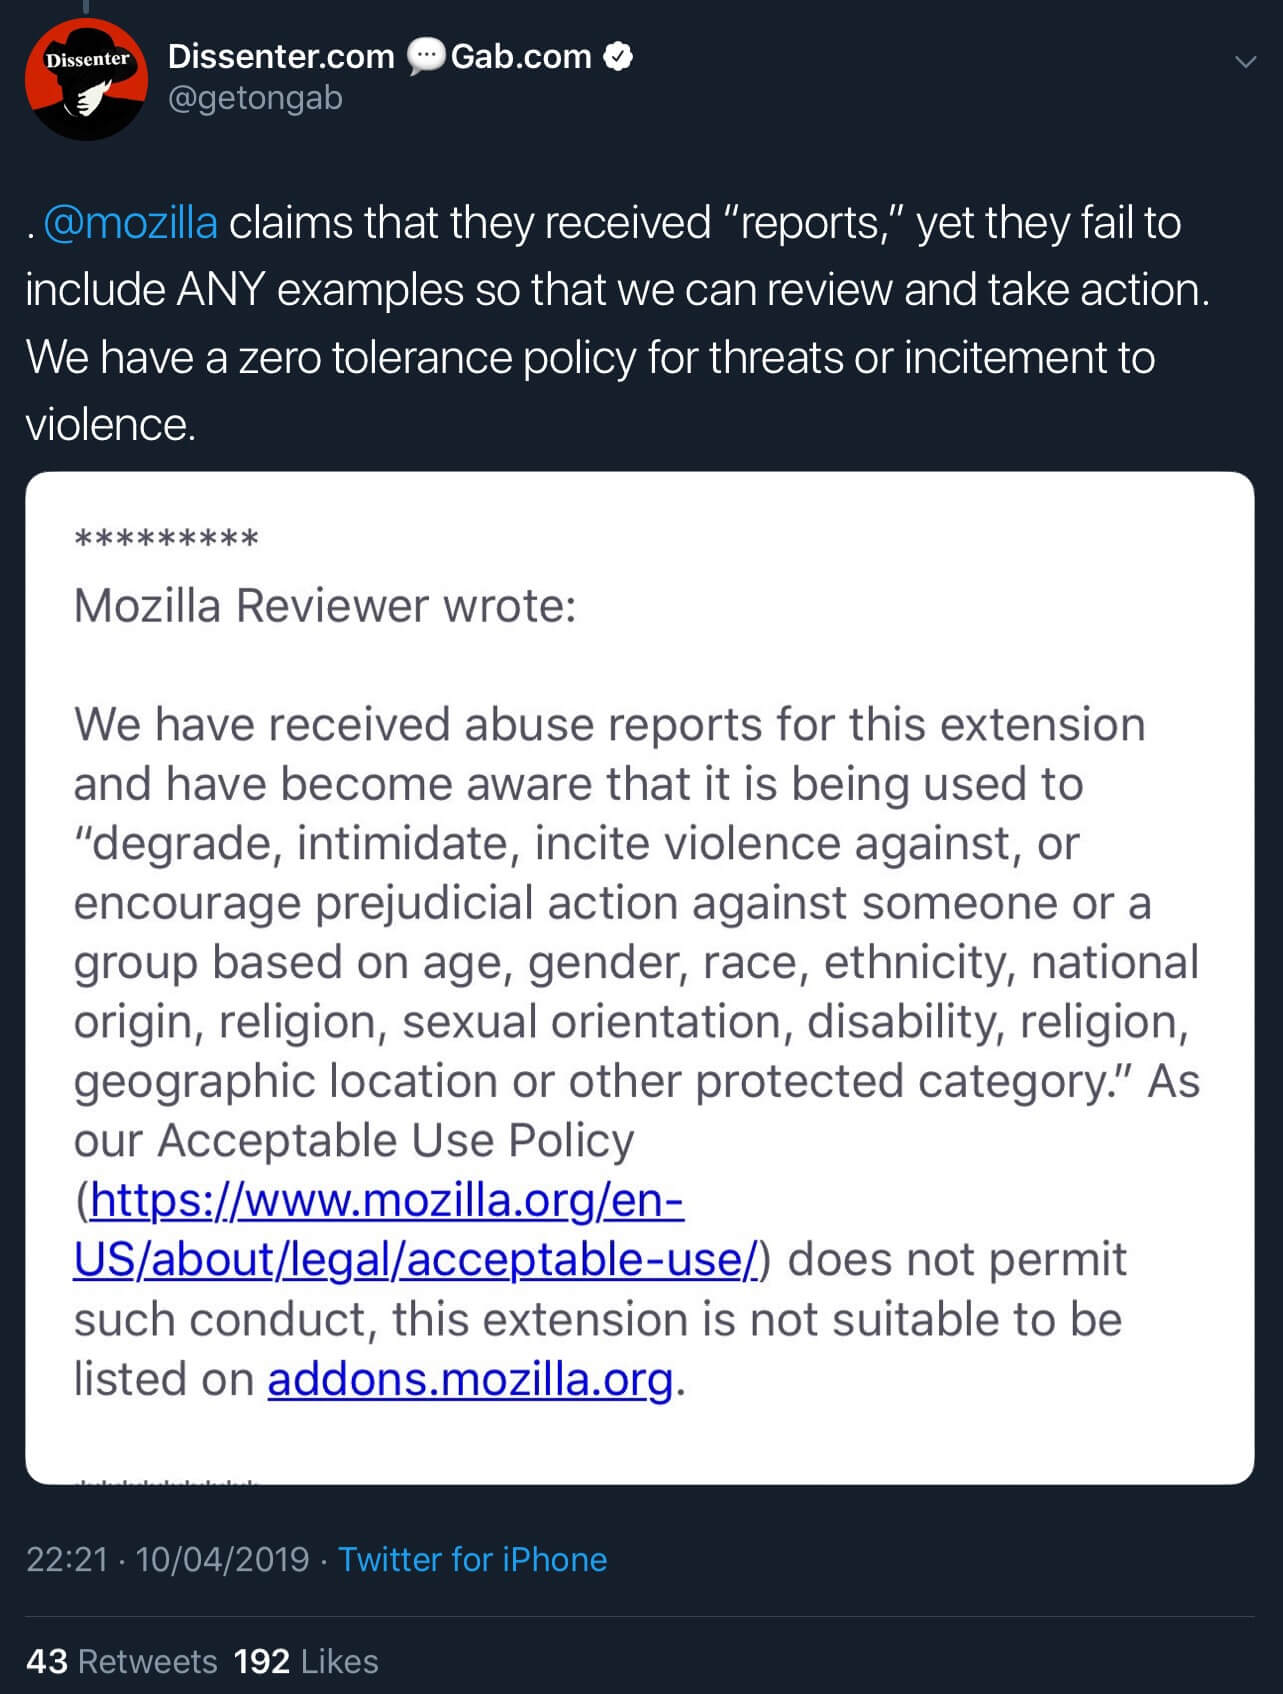 The email from Mozilla providing further details on how Dissenter violated its Acceptable Use Policy.